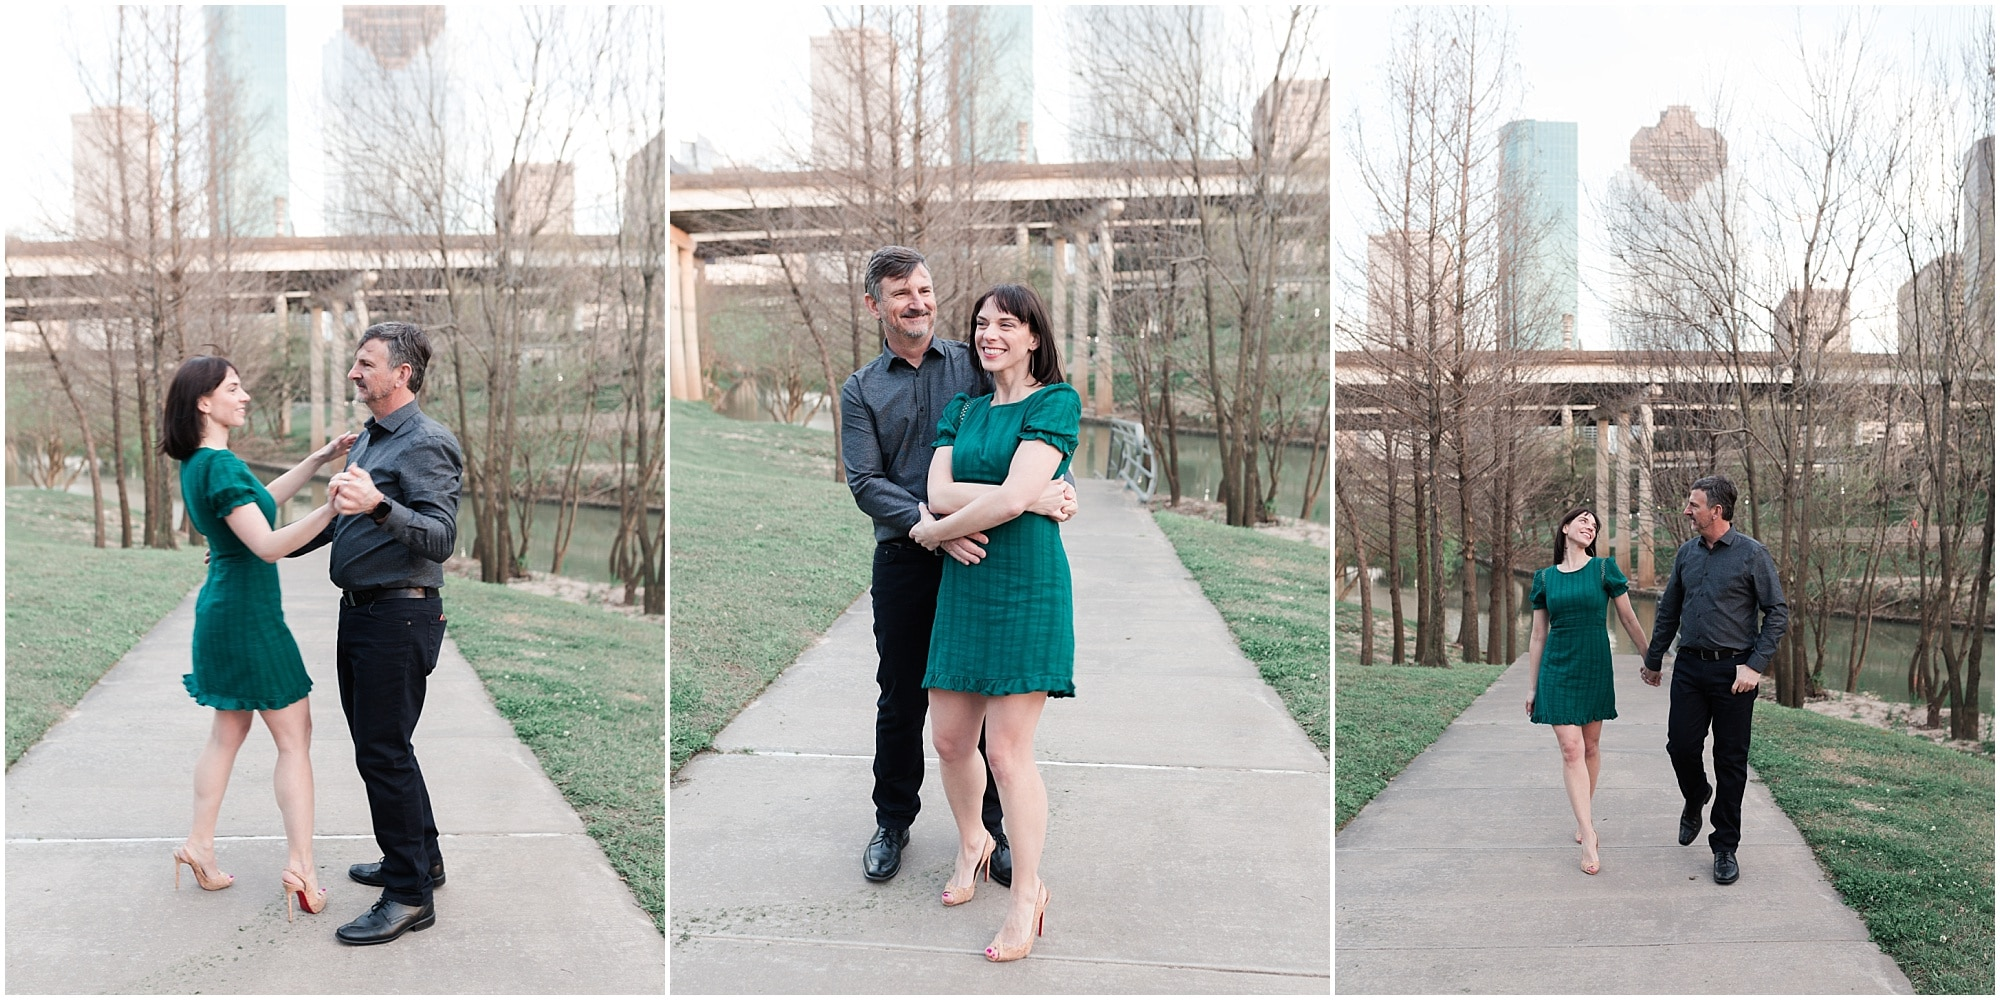 sweet engagement session at Eleanor Tinsley Park in Houston, Texas photographed by Swish and Click Photography